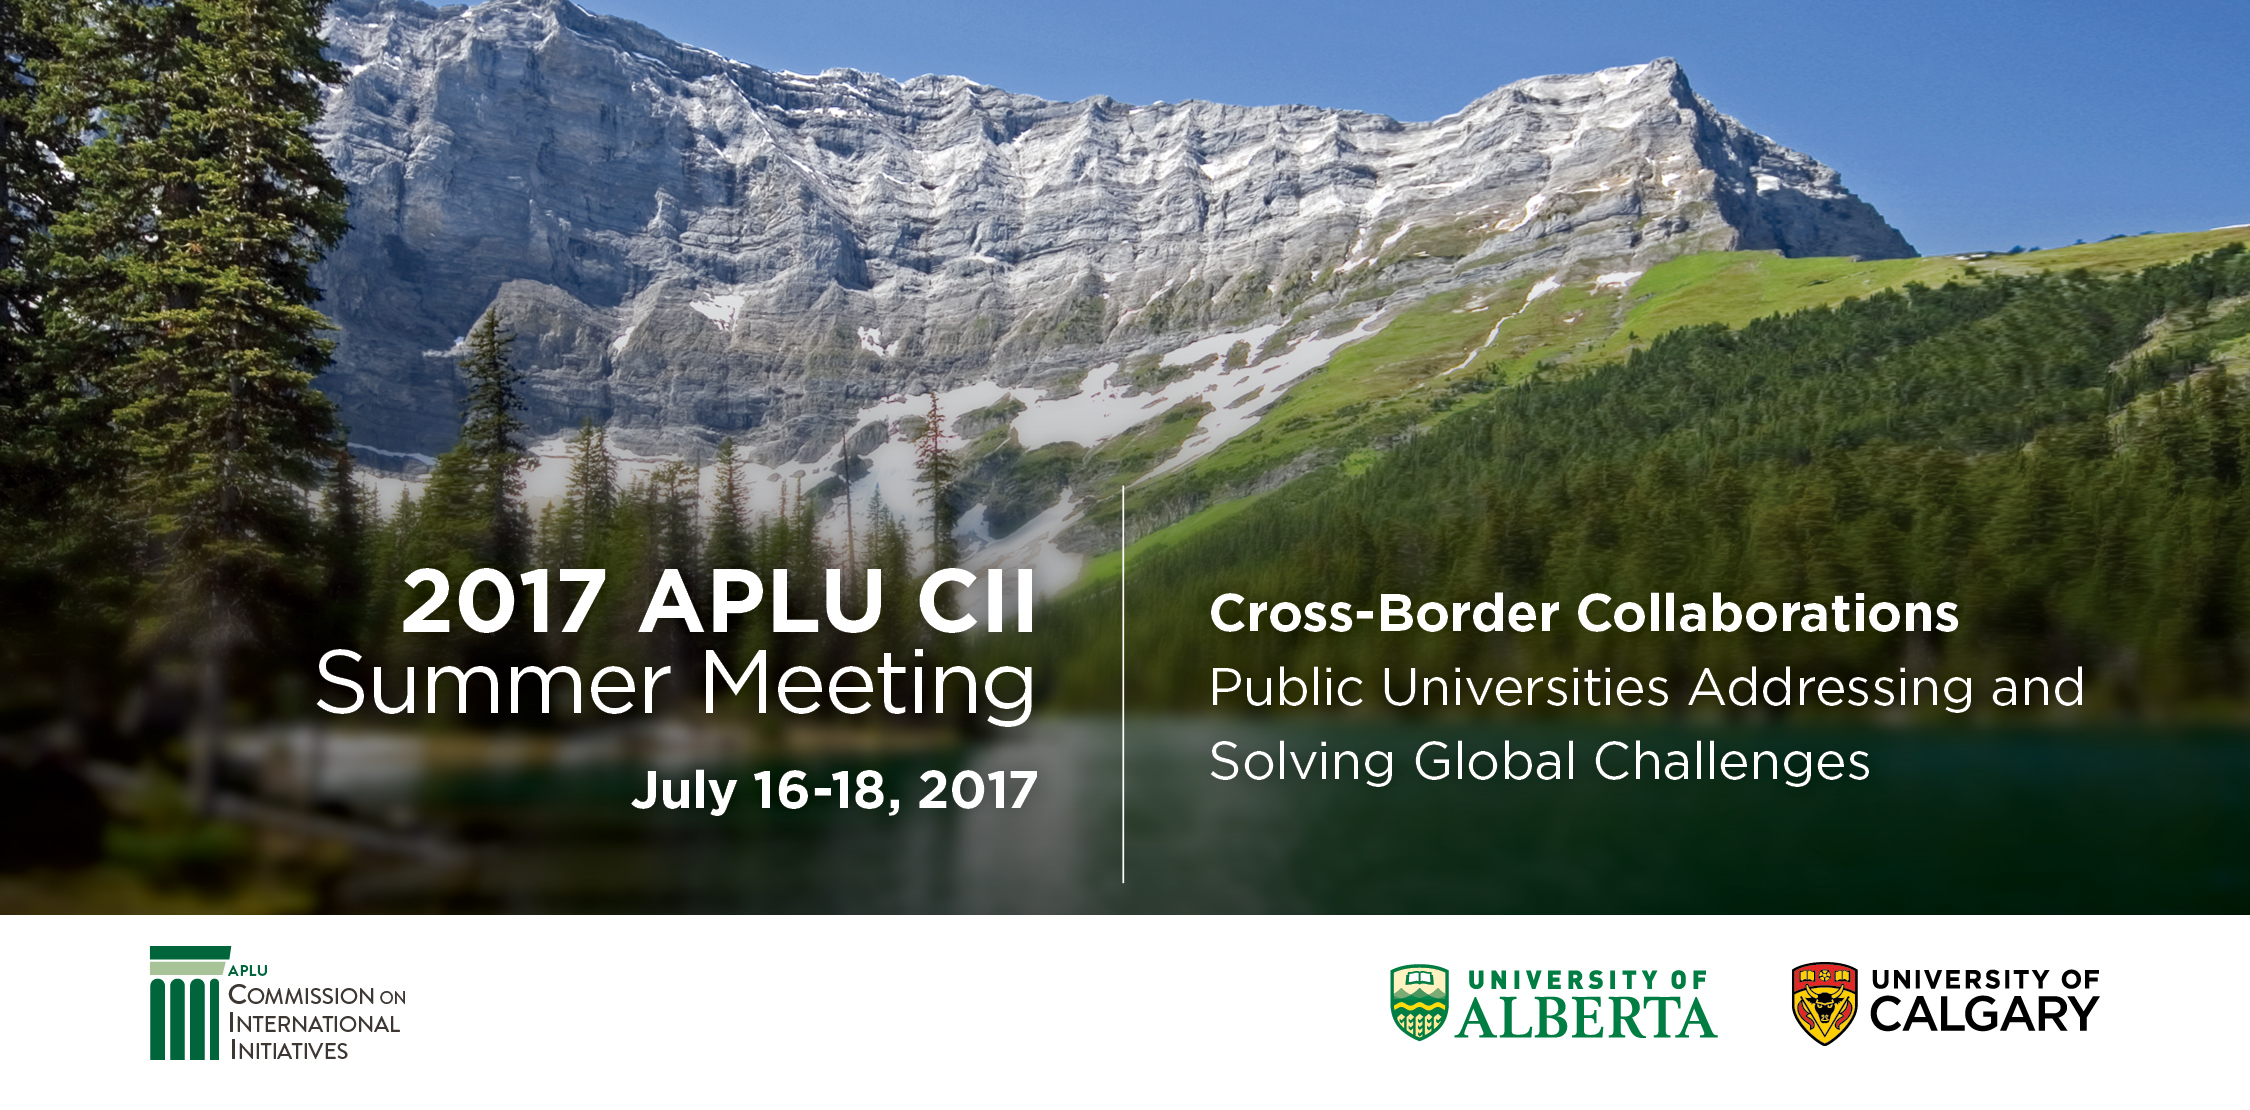 2017 APLU CII Summer Meeting